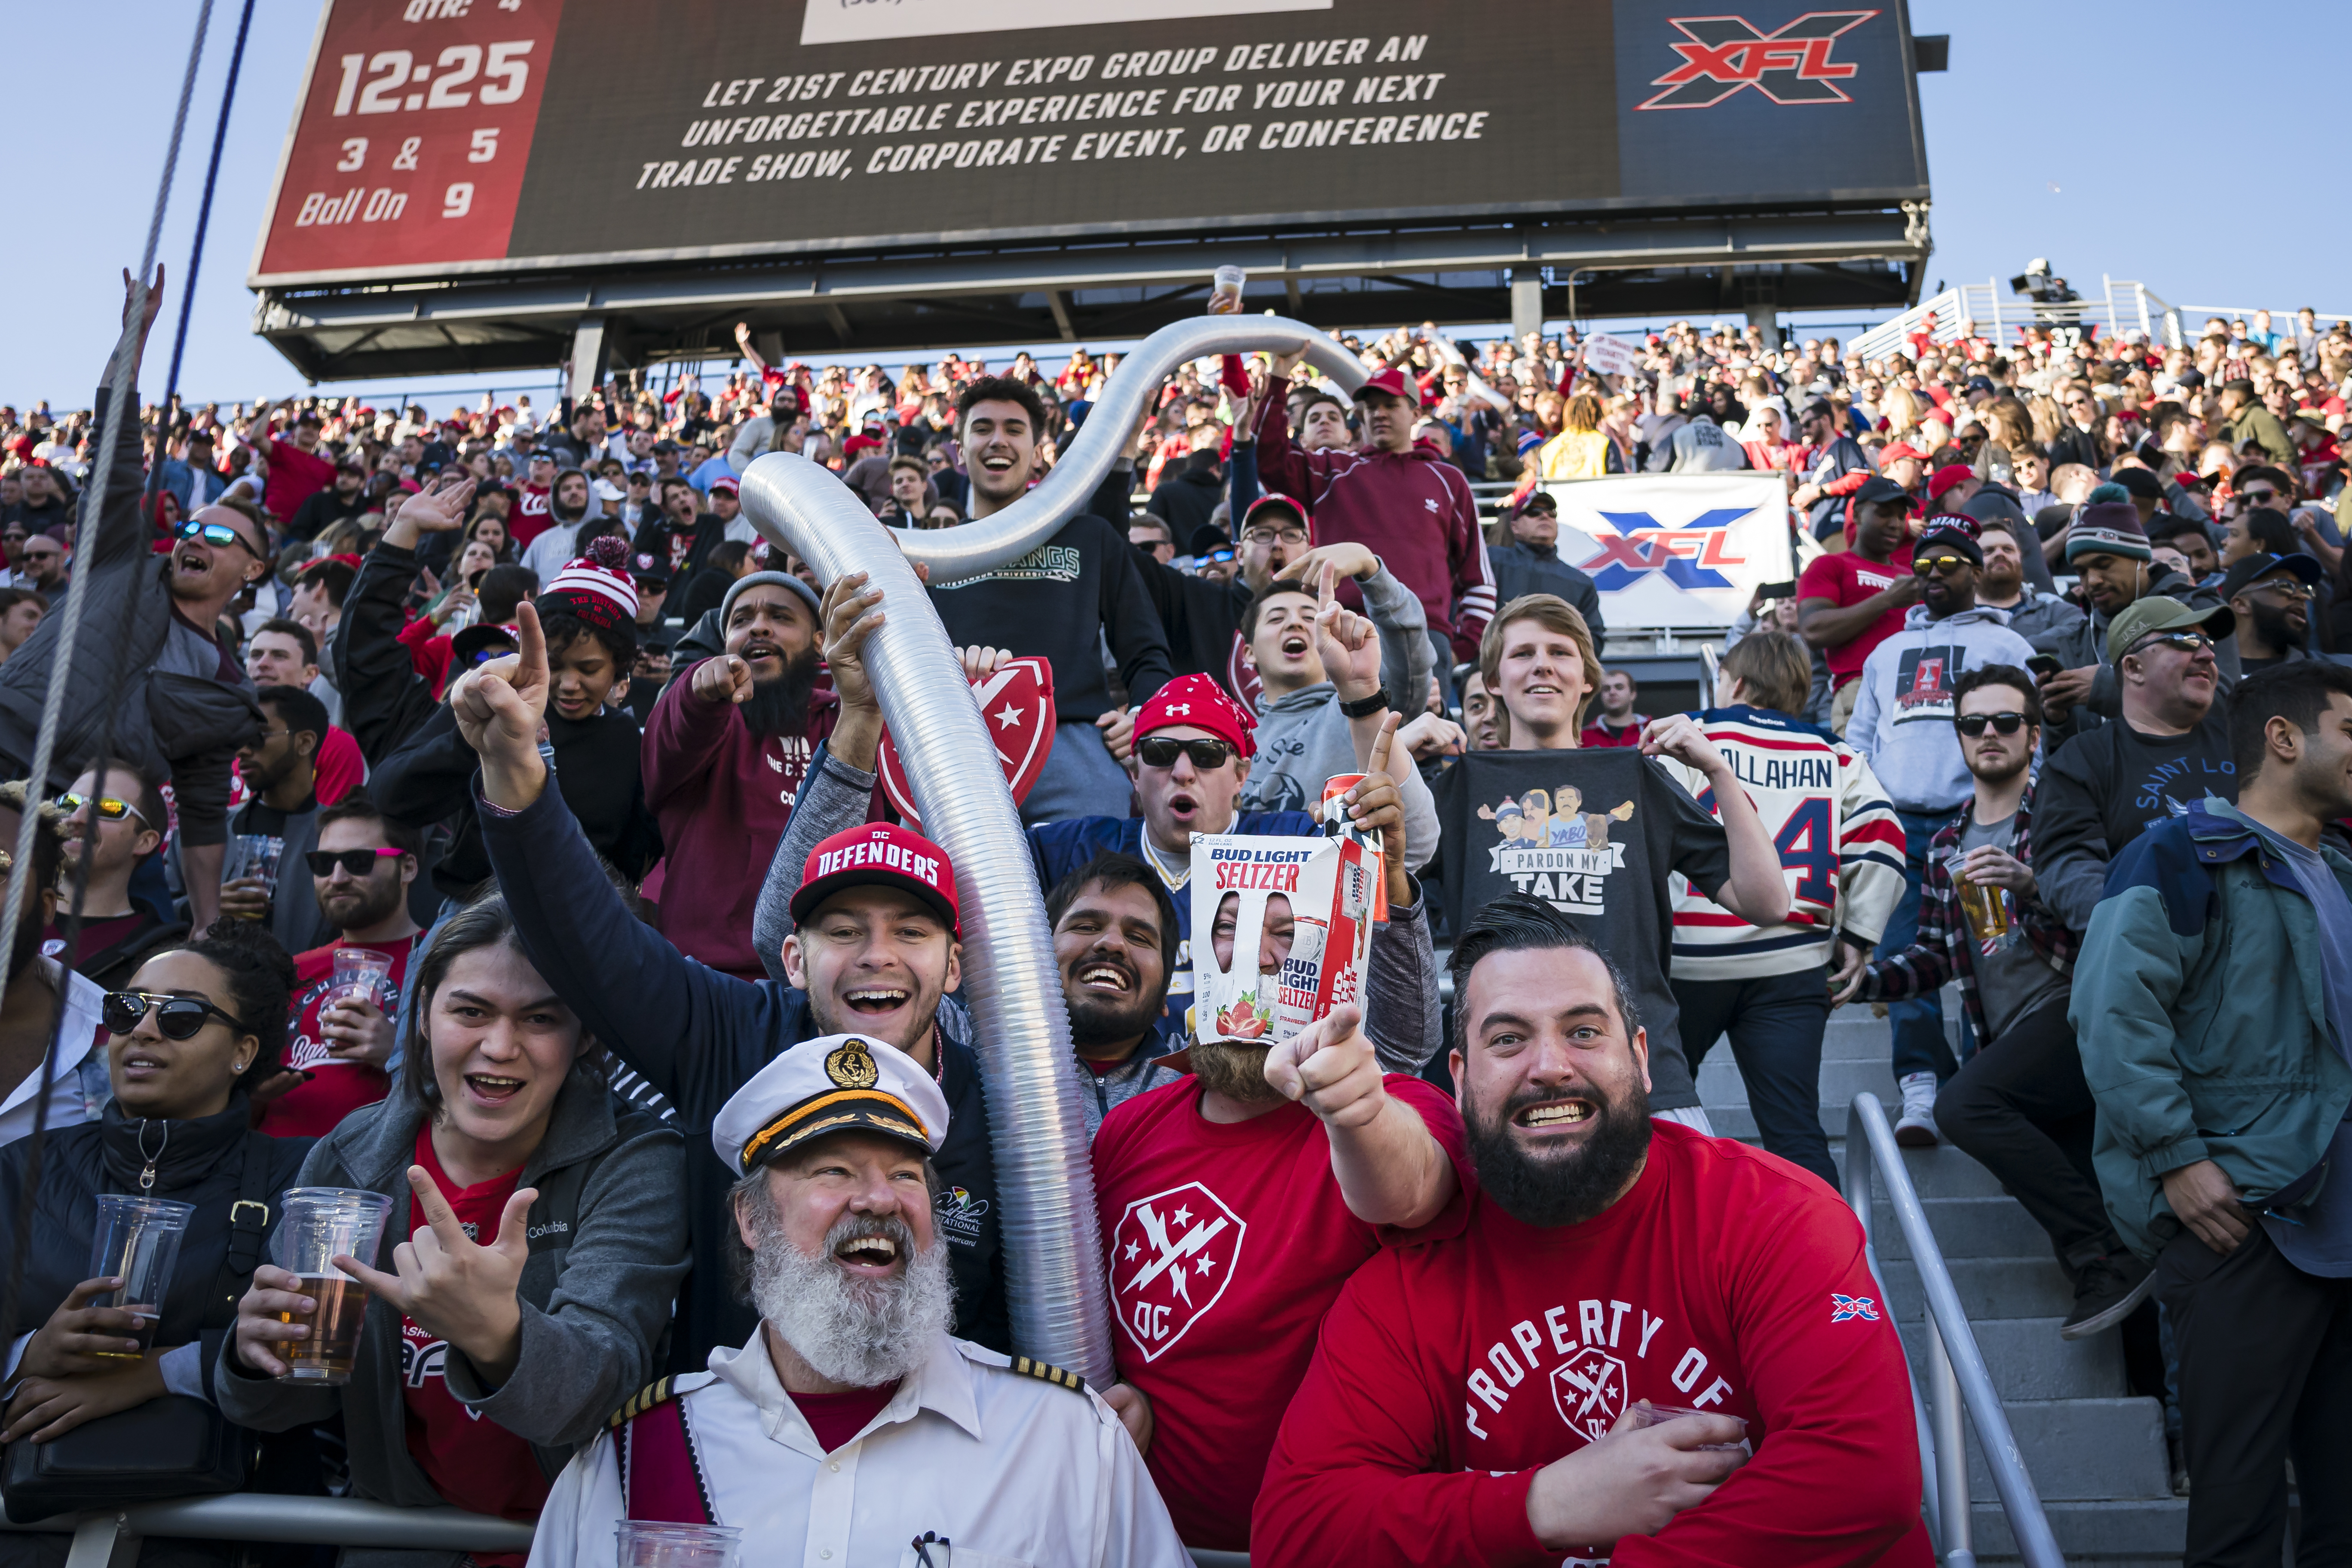 Fans celebrate at the start of the beer cup snake during the second half of the XFL game between the DC Defenders and the St. Louis Battlehawks at Audi Field on March 8, 2020 in Washington, DC.